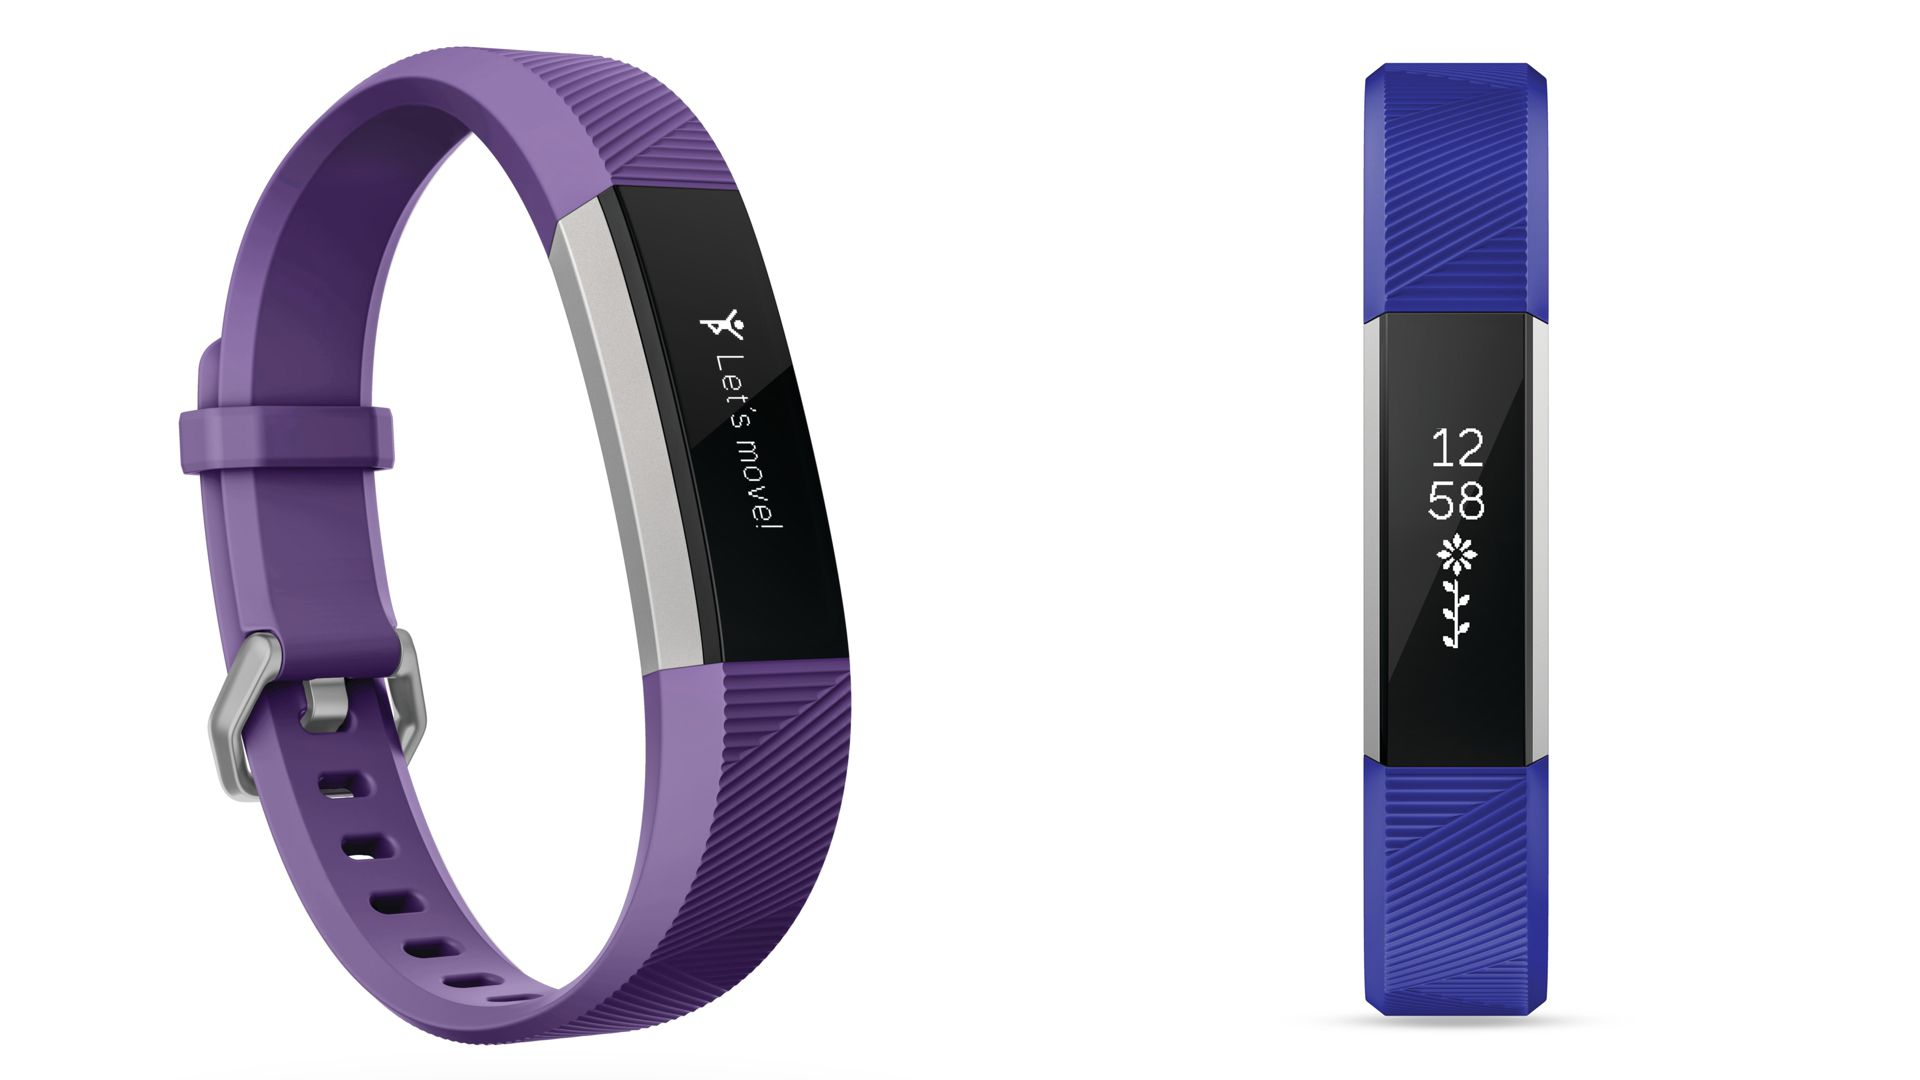 Fitbit Ace blue and purple wristbands